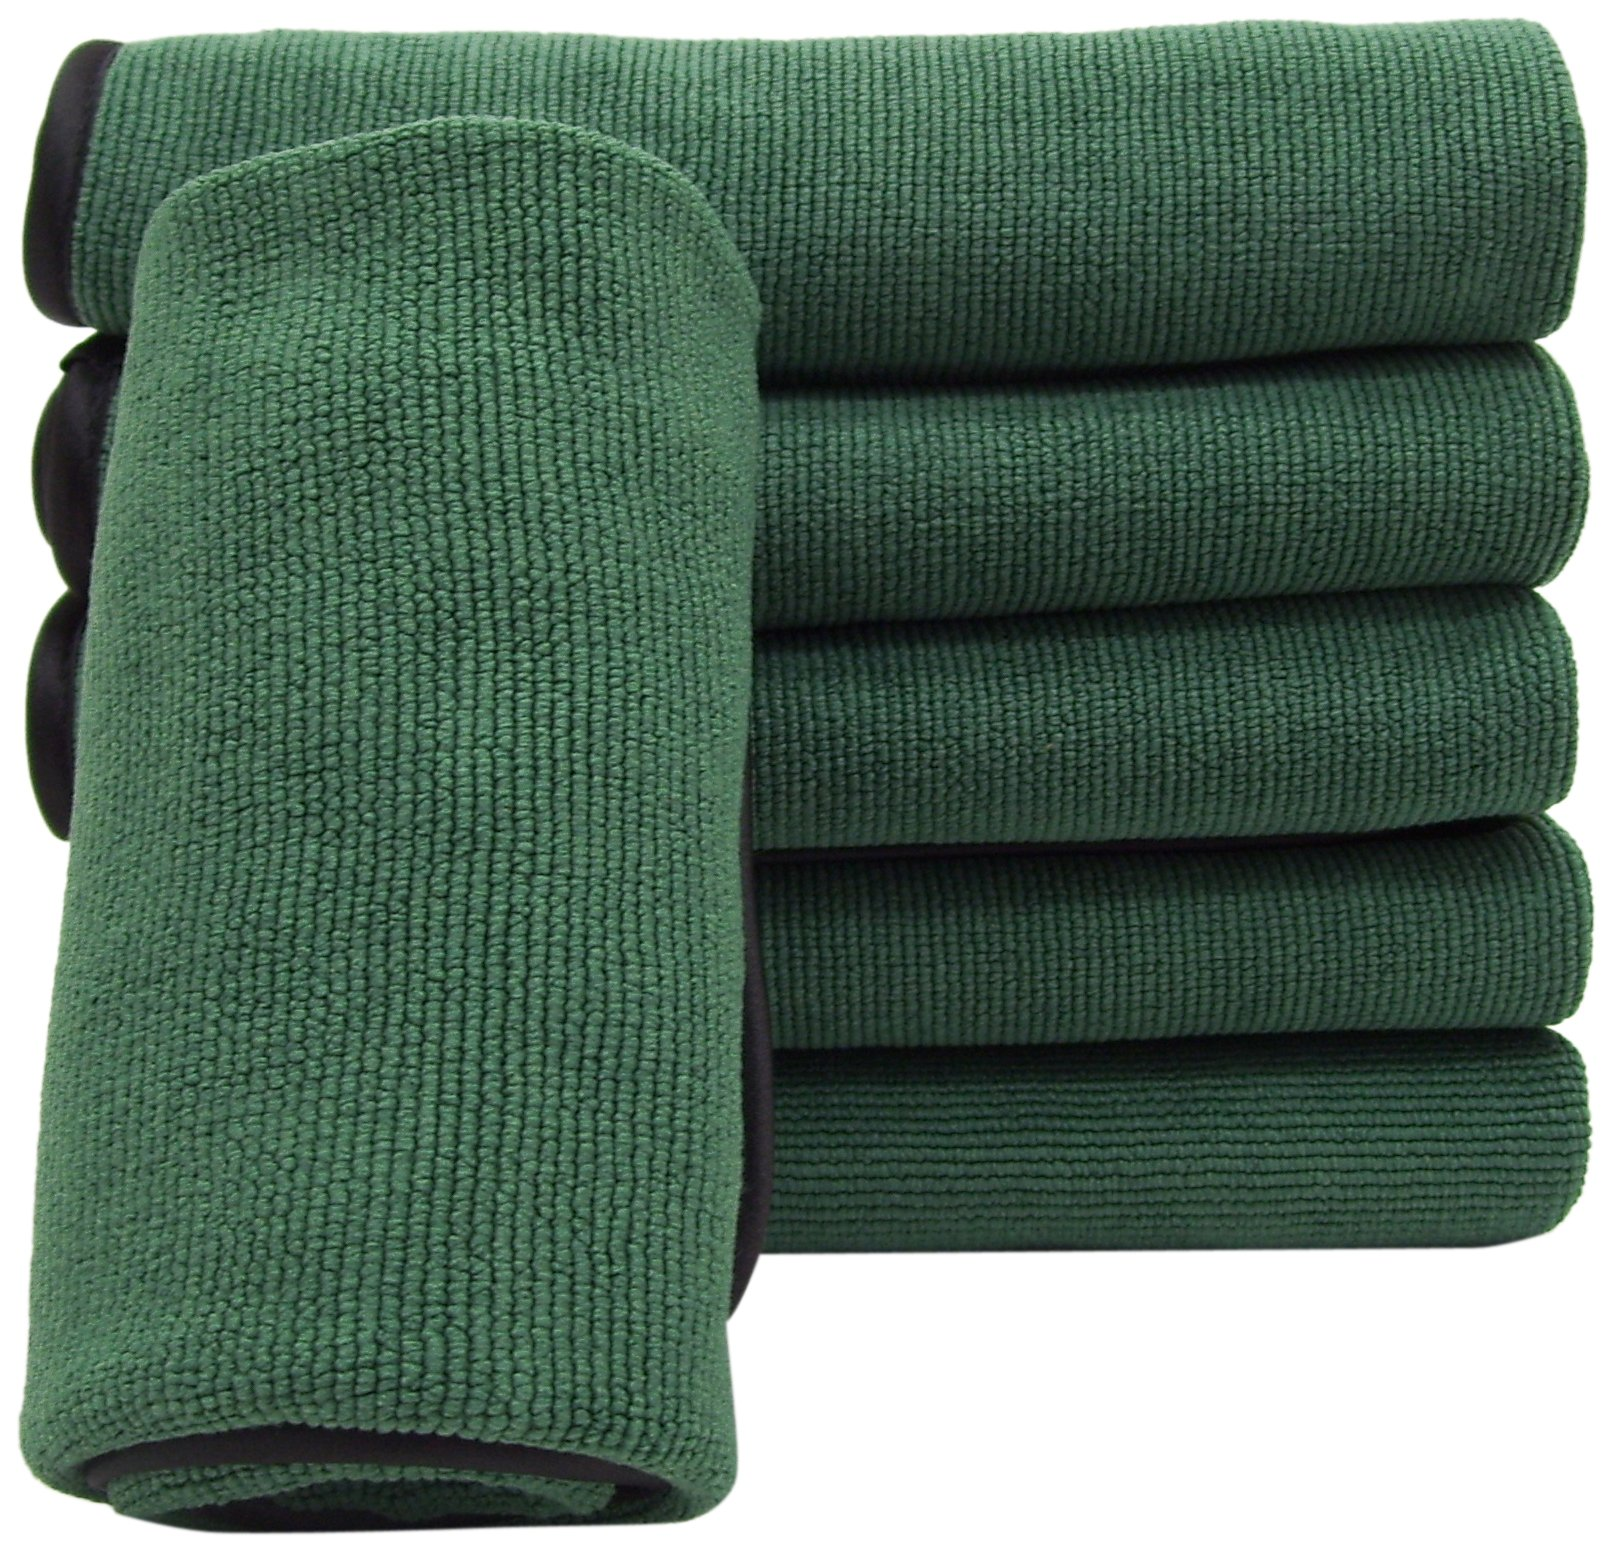 DeRoyal MF201G-12A Microfiber Pearl Weave Cleaning Cloth Microfiber Cleaning Cloth, 16''X16'', Green